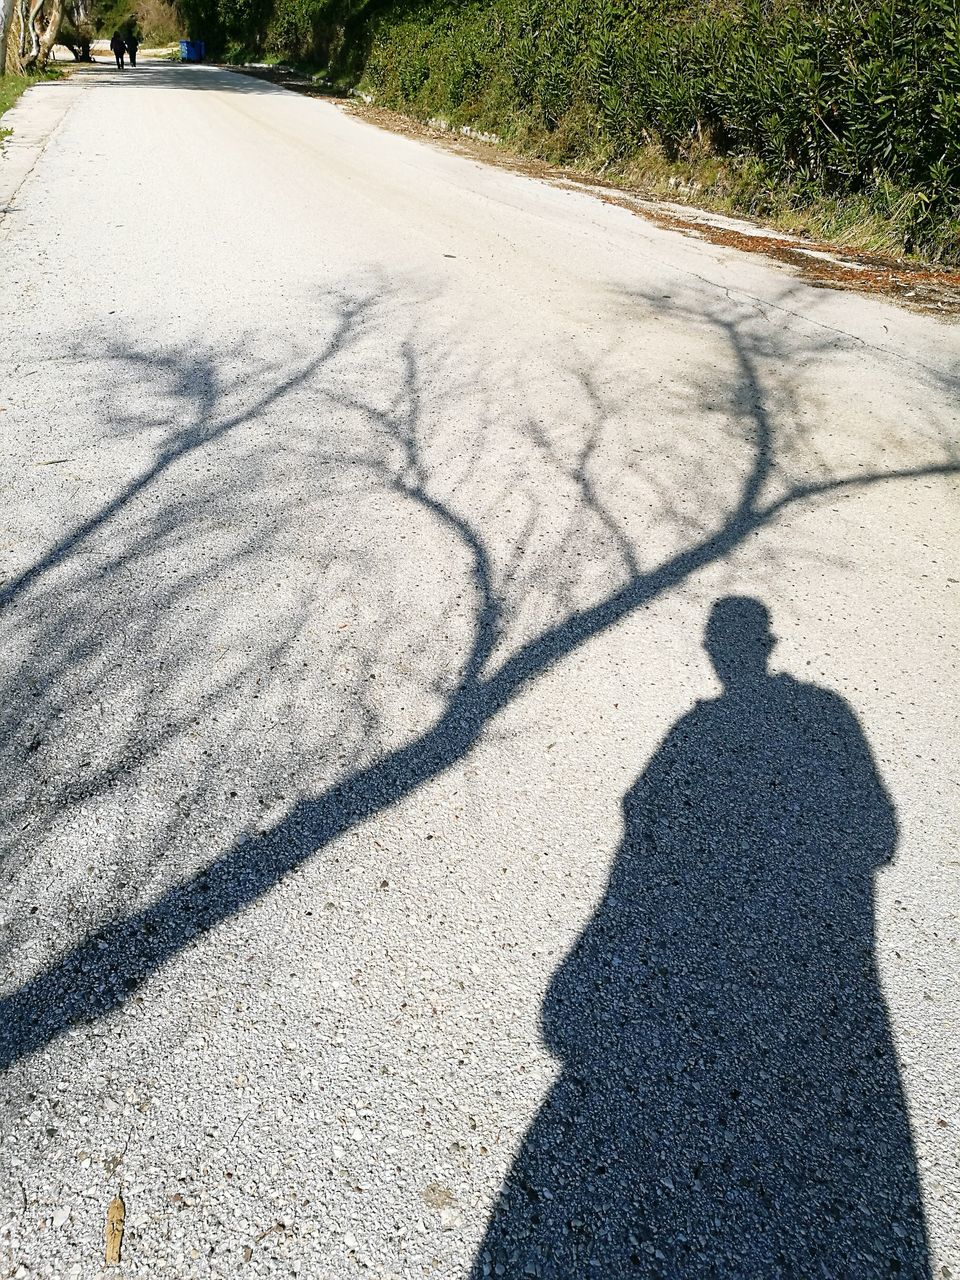 shadow, sunlight, focus on shadow, high angle view, day, outdoors, nature, road, sand, real people, tree, beauty in nature